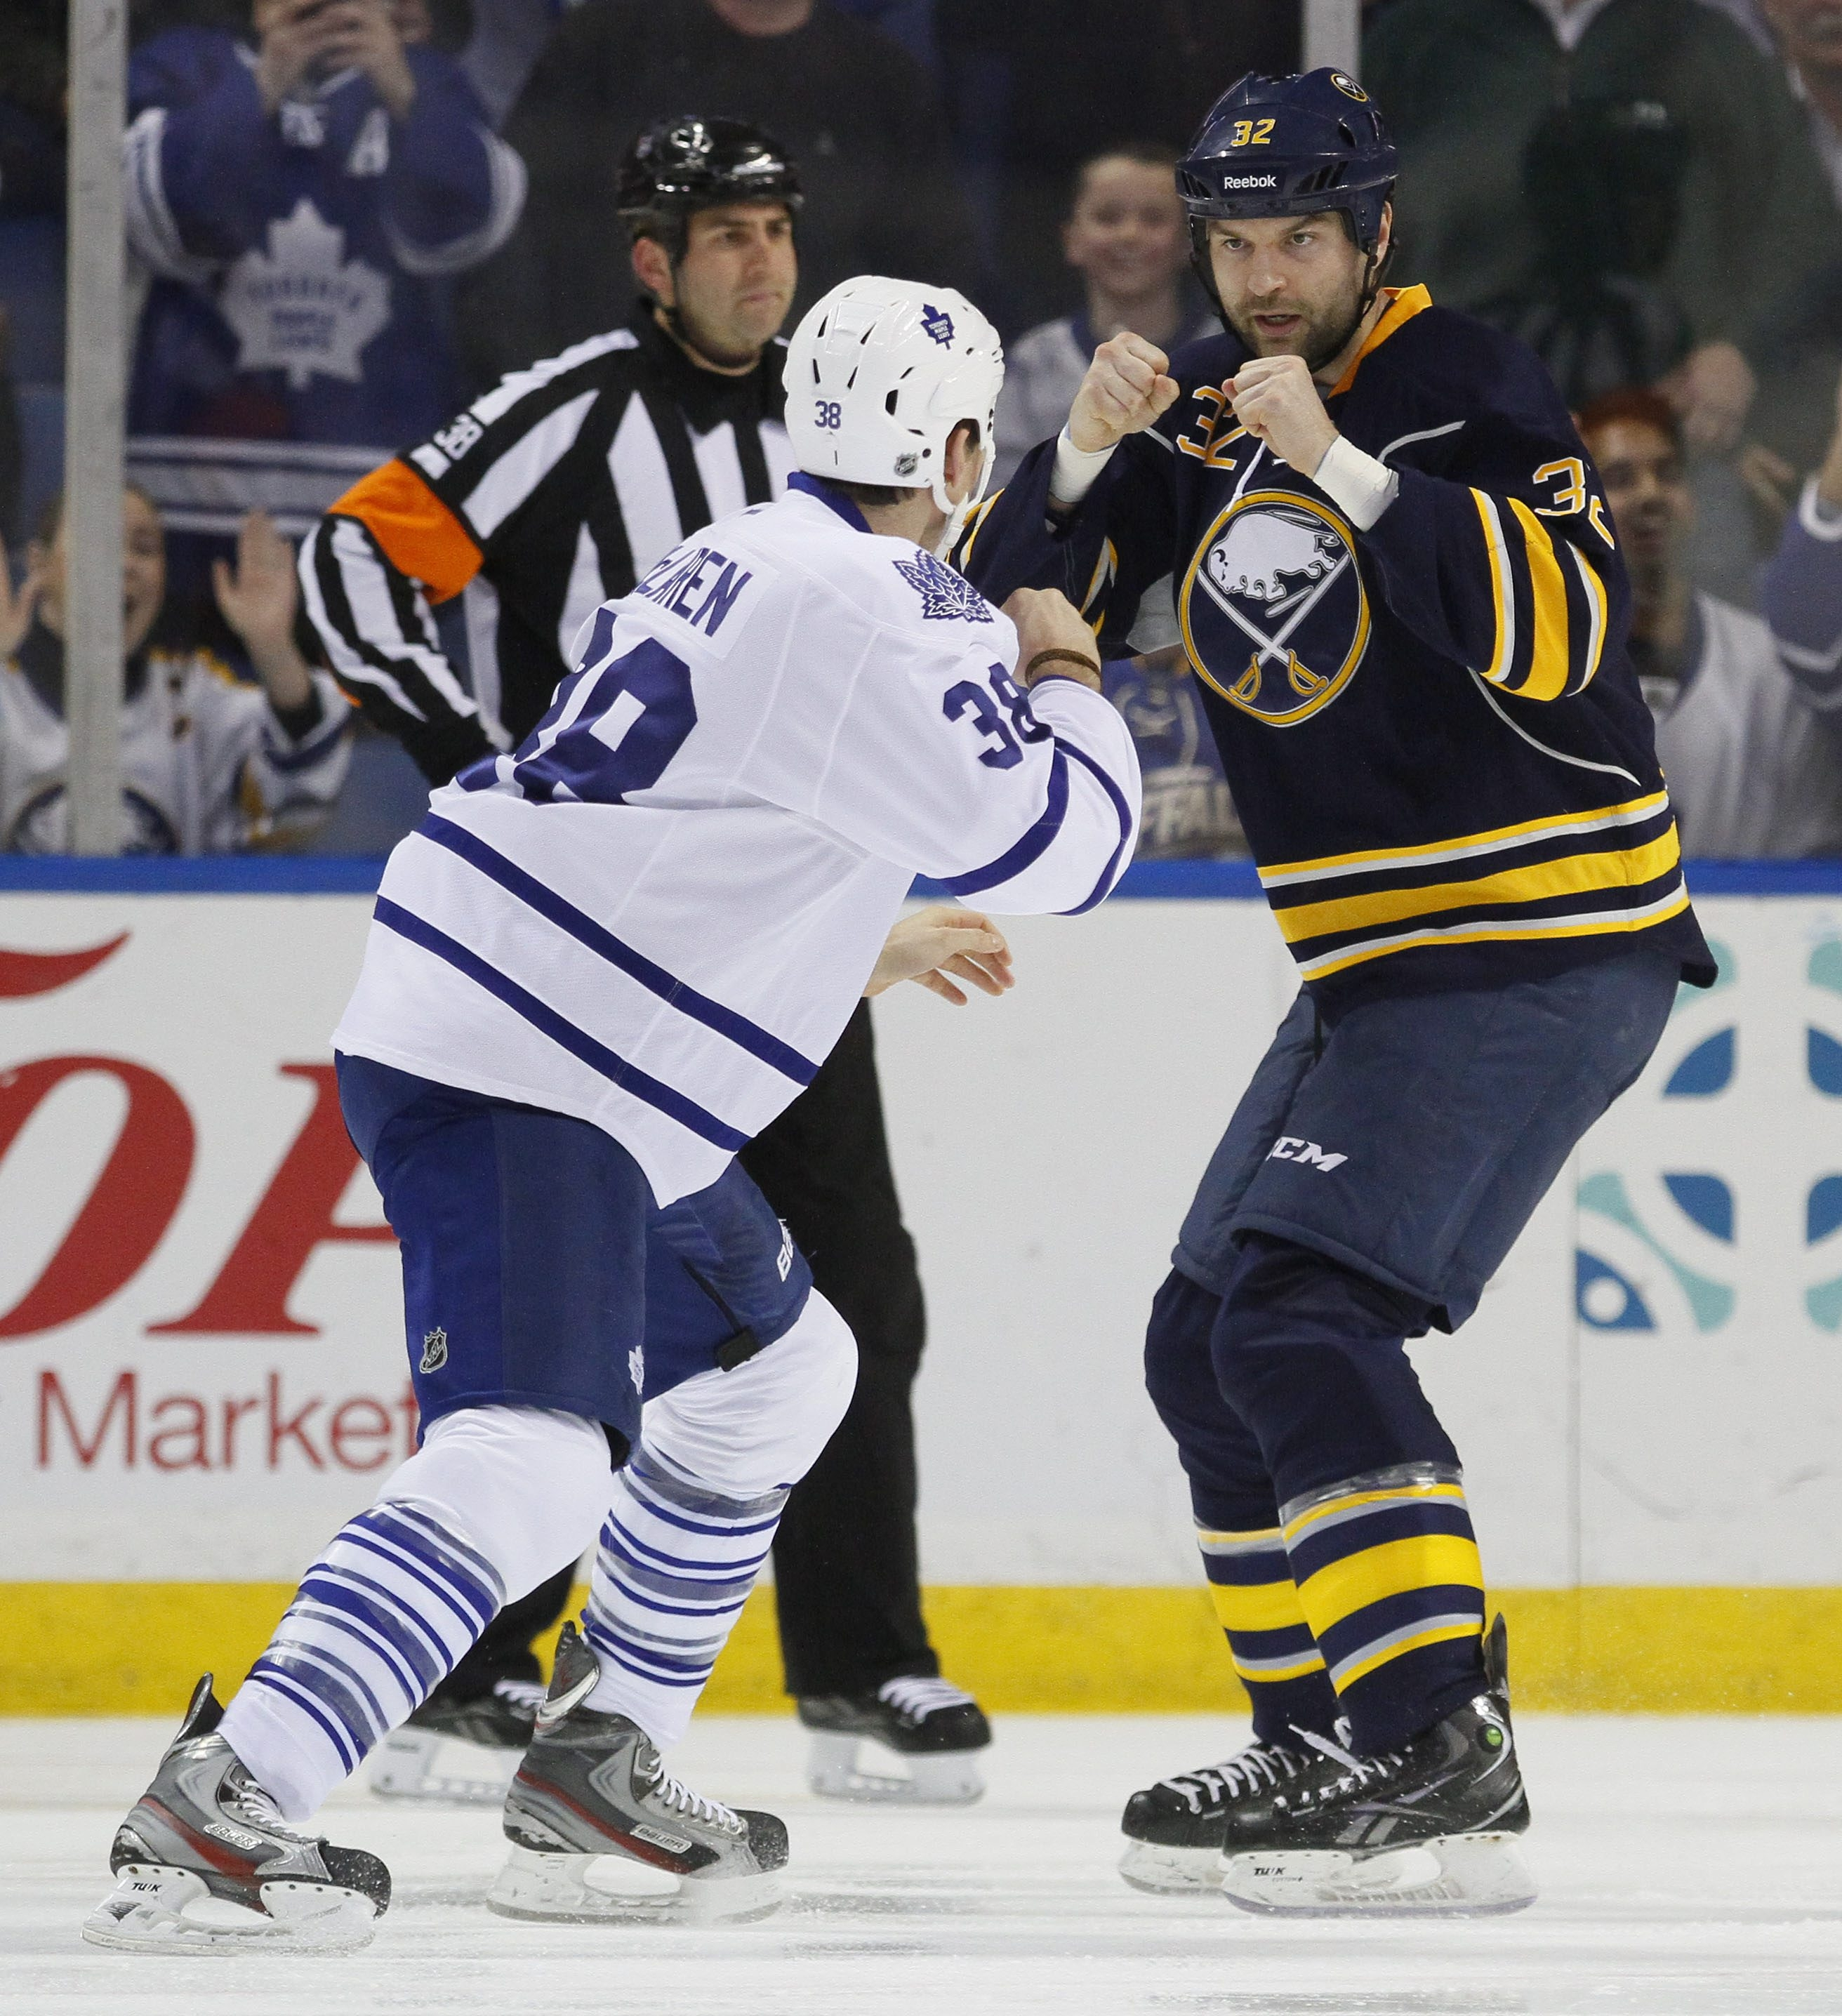 The fact that John Scott fights on the ice does not make him a dirty player, according to Sabres co-captain Steve Ott.